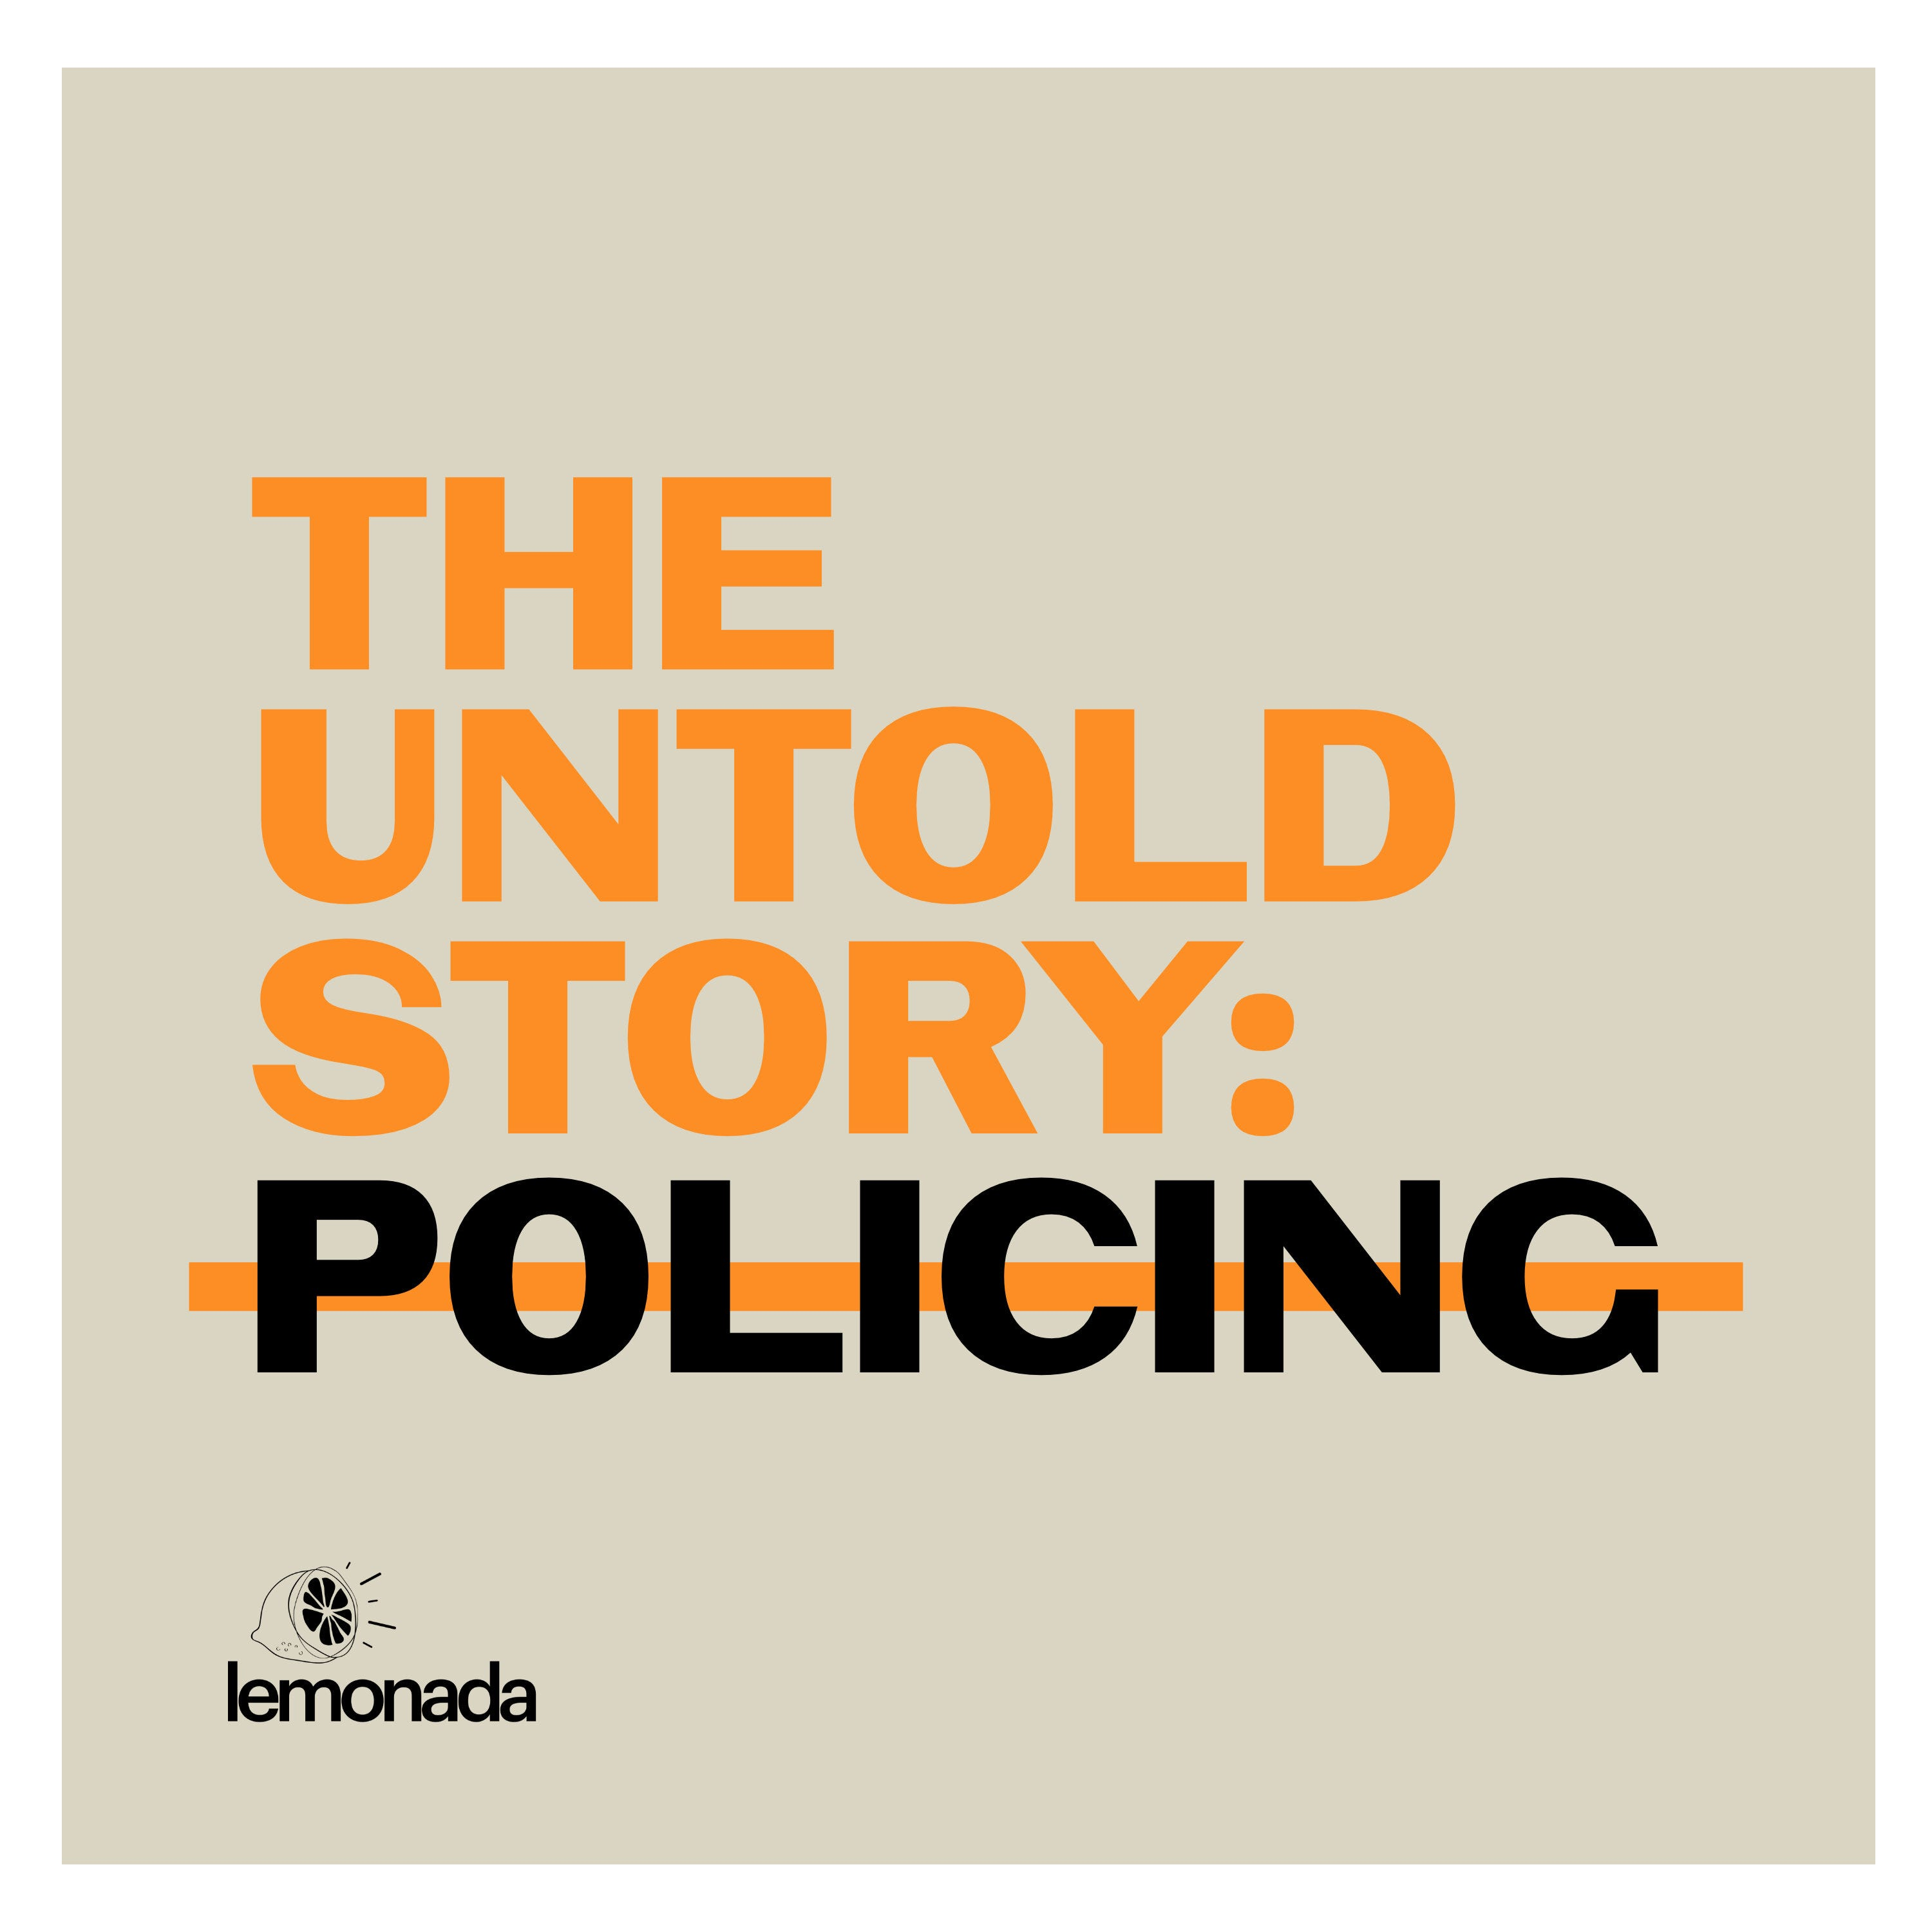 The Untold Story: Policing